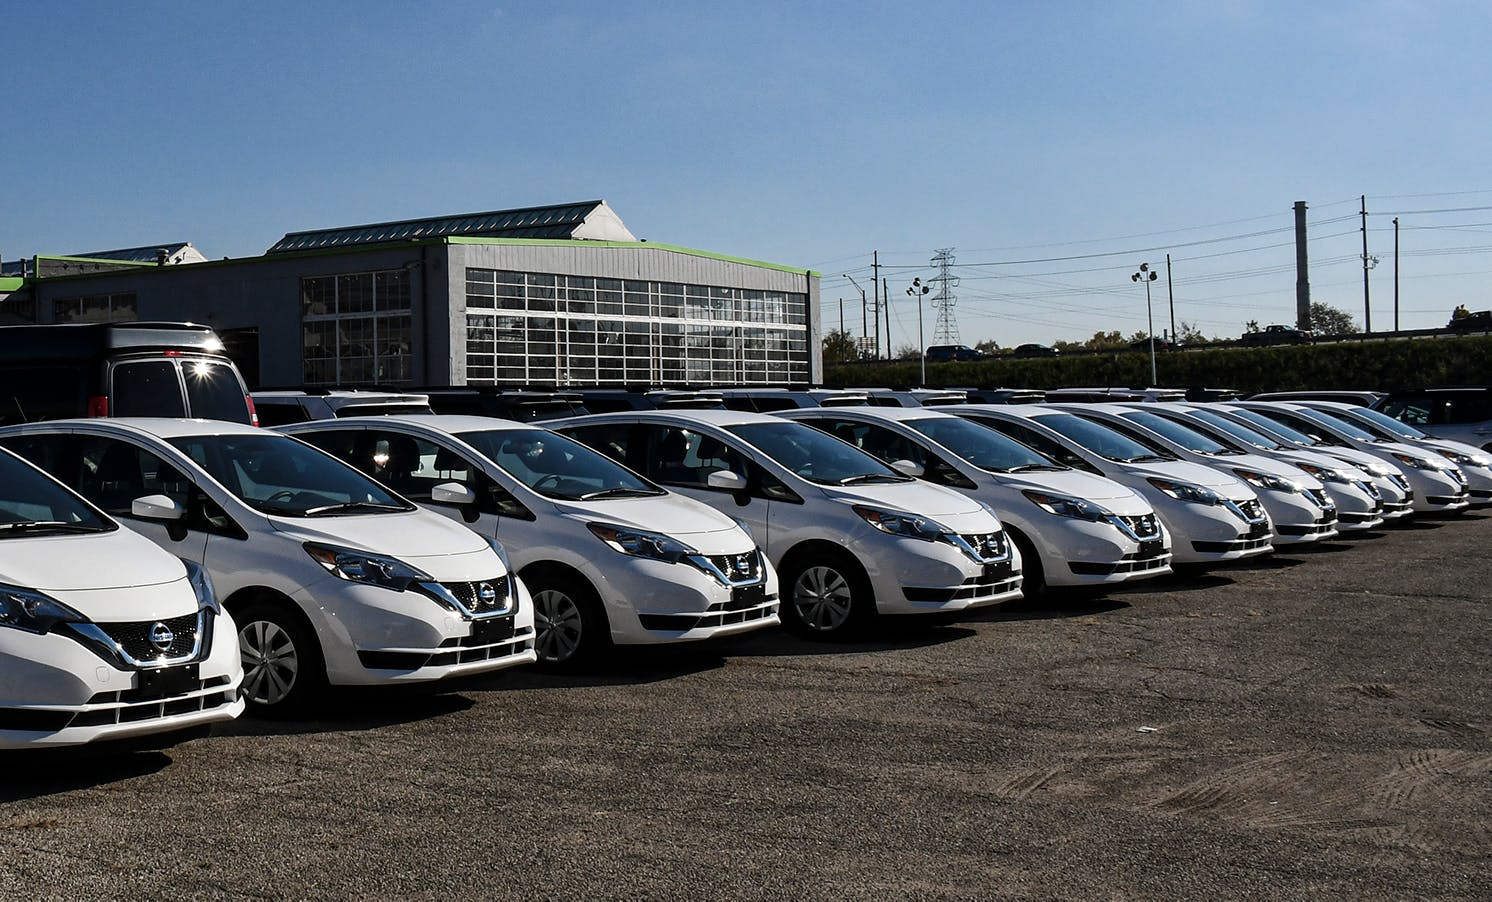 How to Sell Your Fleet Cars: 3 Ways to Maximize Remarketing Profit.